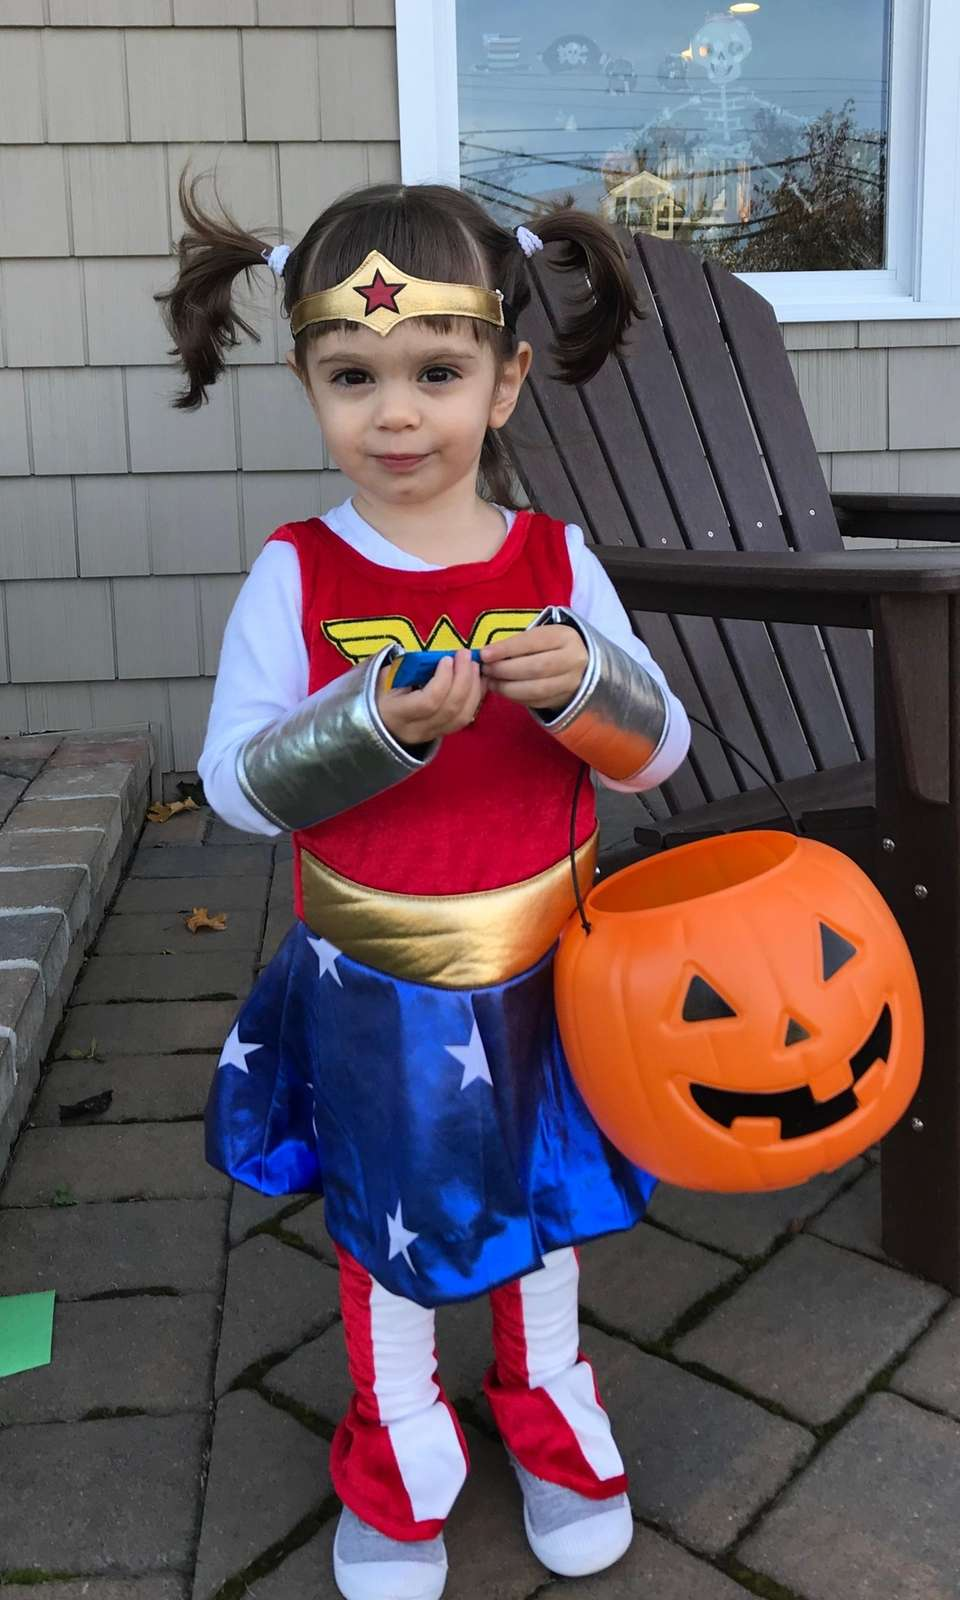 Our Wonder Woman, Zoey